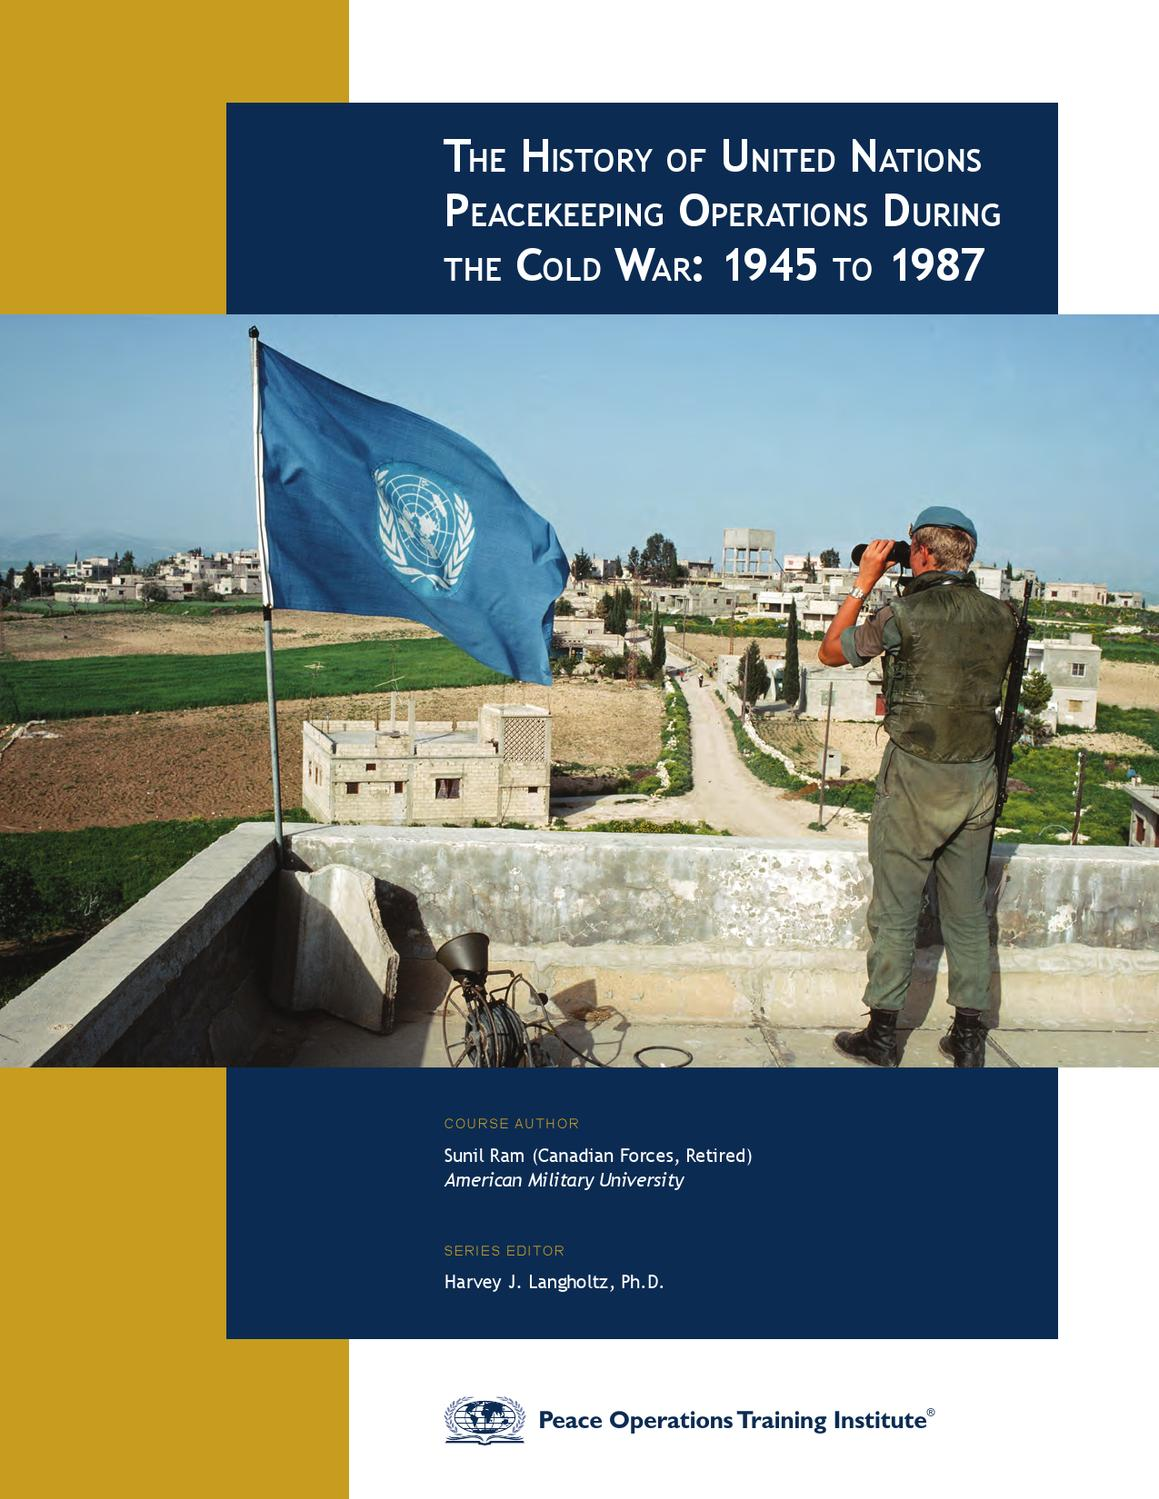 peacekeeping essay William shawcross shows how un peacekeeping has failed but does not draw the obvious conclusion: the world's hot spots need us intervention, and plenty of it.